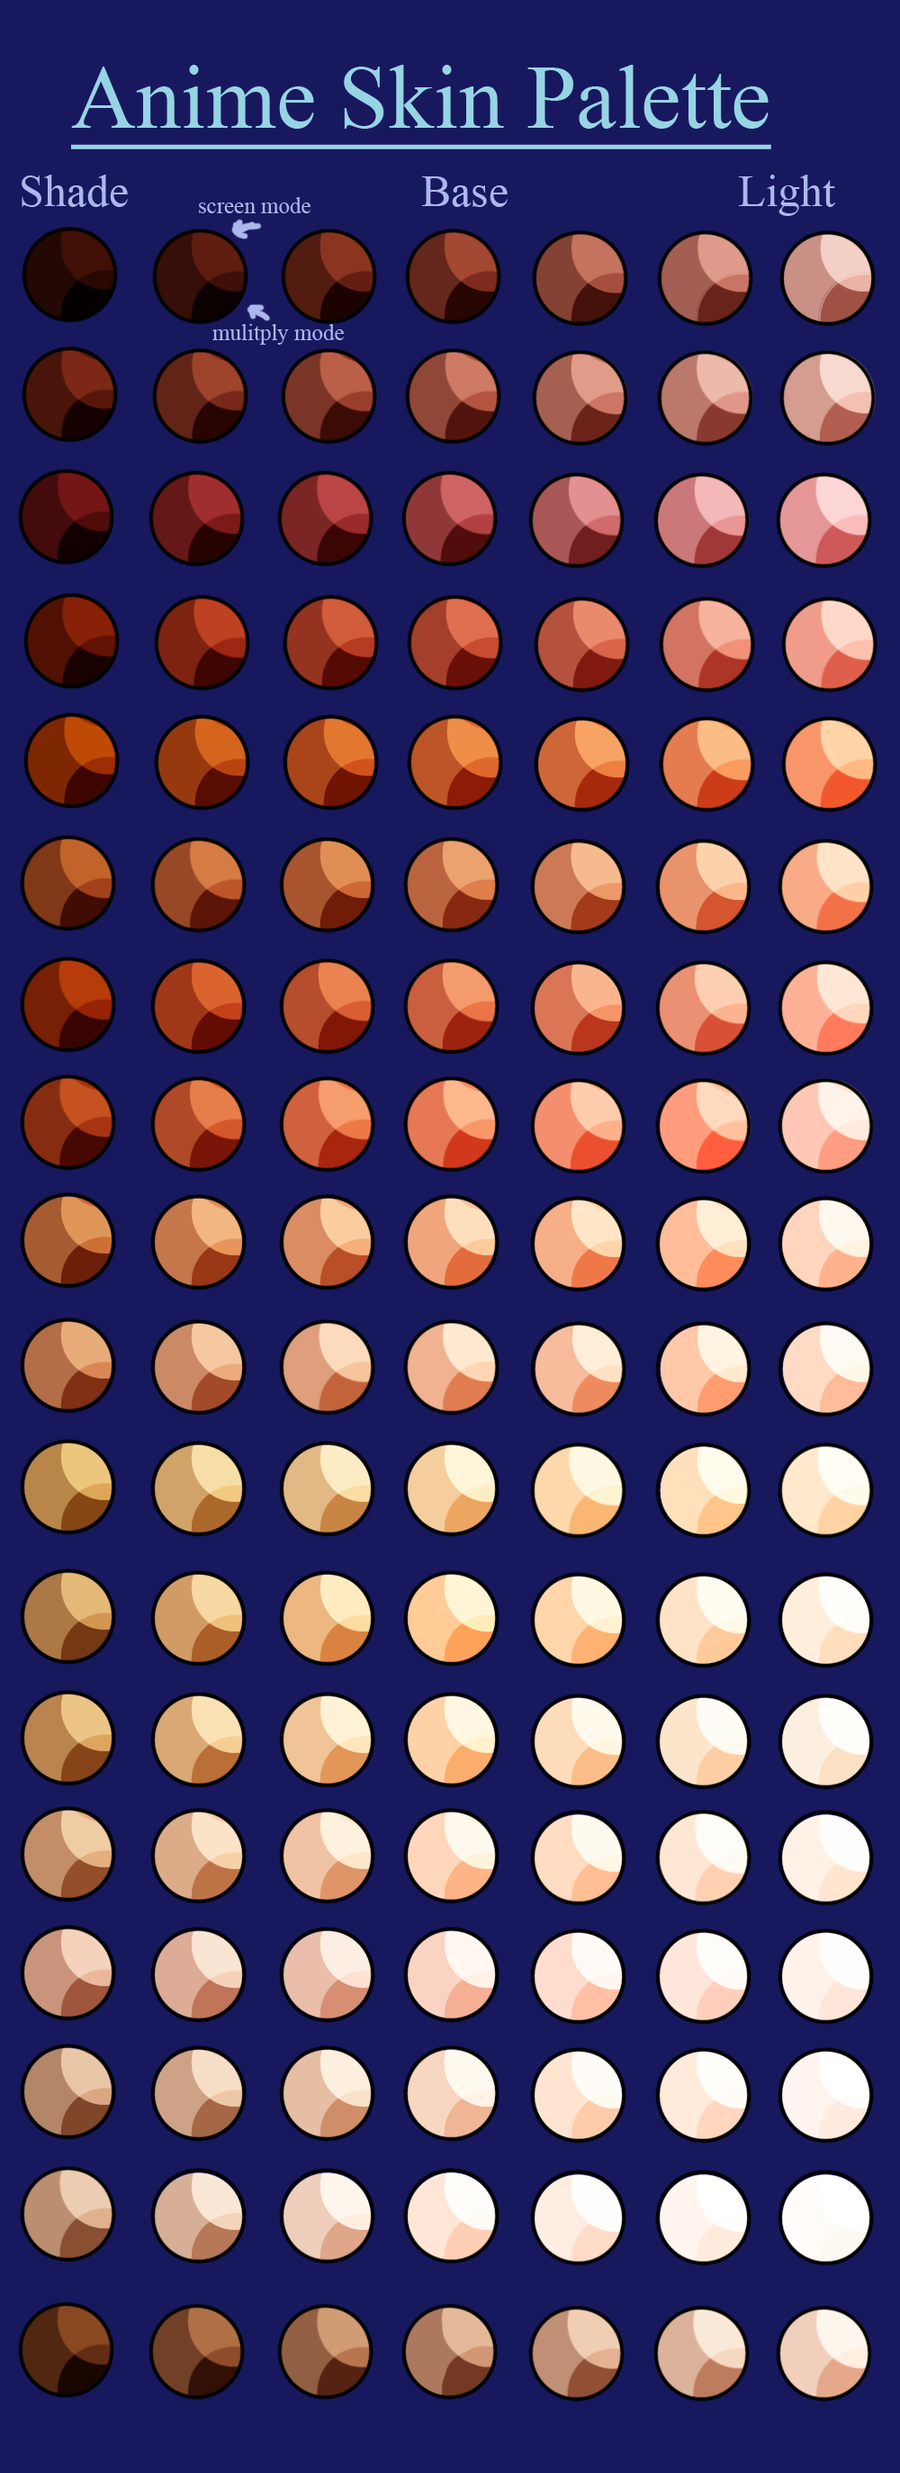 My Anime Skin Palette by TheDevilButterfly.deviantart